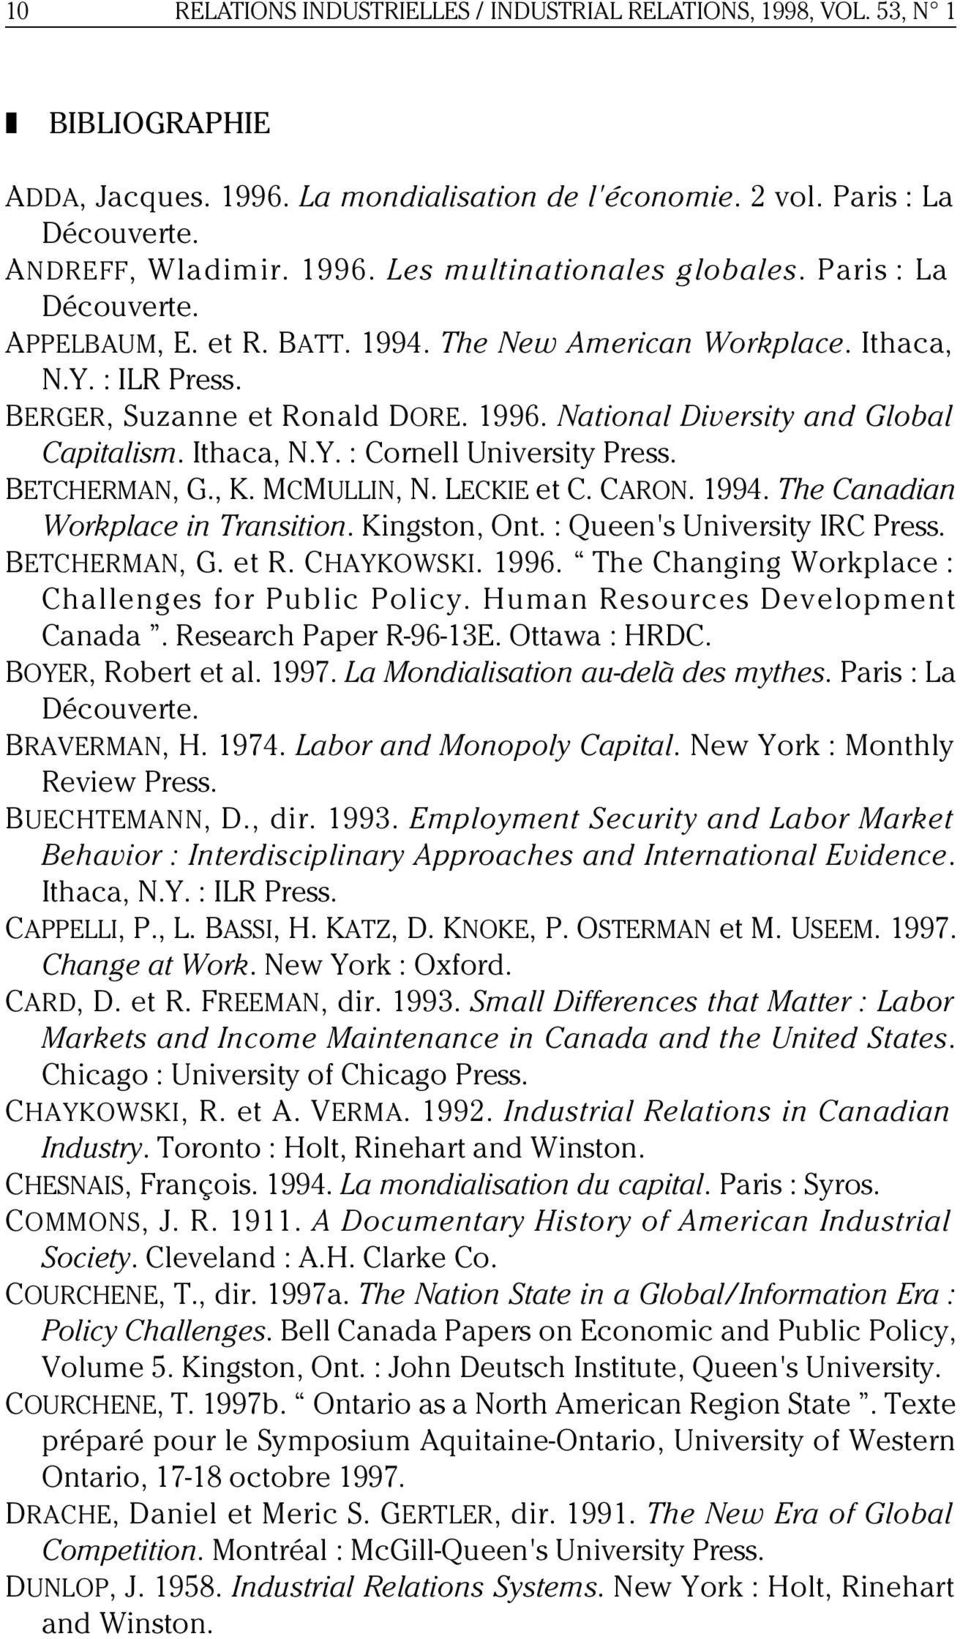 BETCHERMAN, G., K. MCMULLIN, N. LECKIE et C. CARON. 1994. The Canadian Workplace in Transition. Kingston, Ont. : Queen's University IRC Press. BETCHERMAN, G. et R. CHAYKOWSKI. 1996.